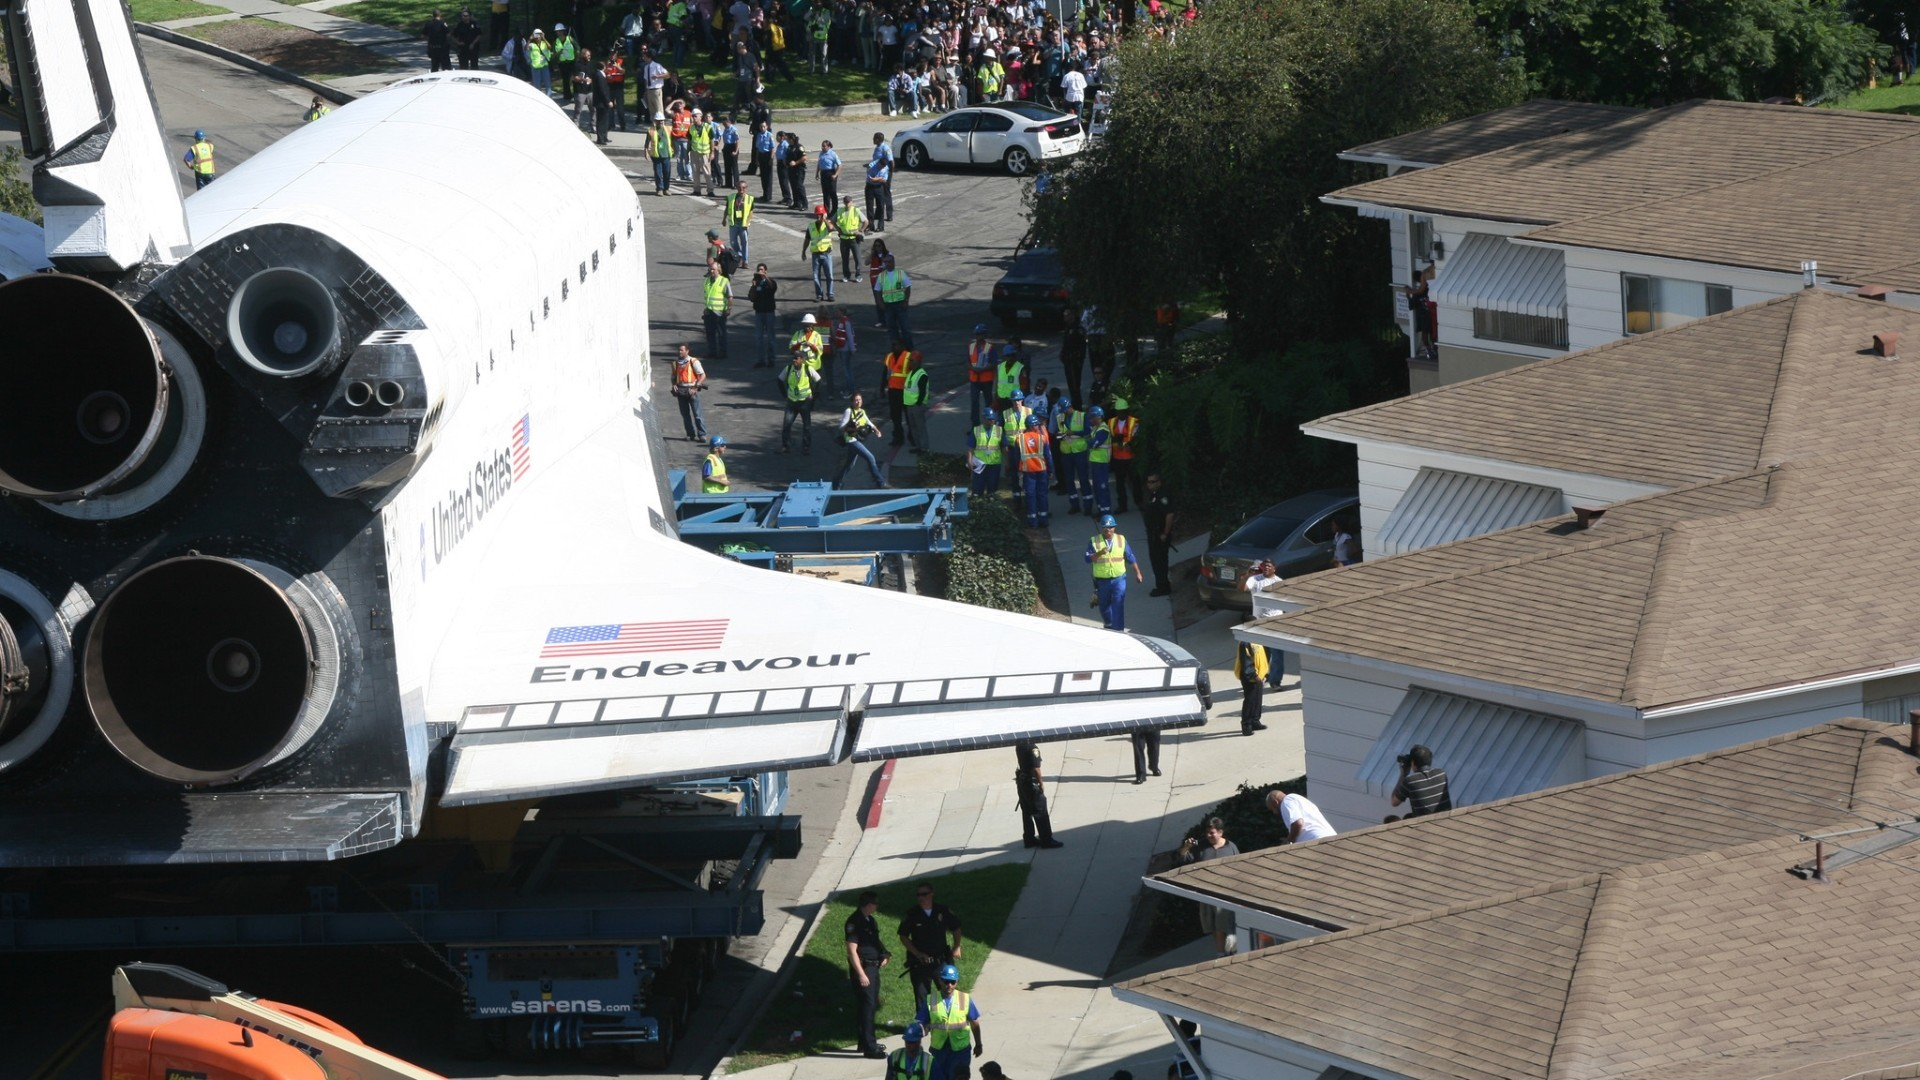 space shuttle endeavour time lapse - photo #1